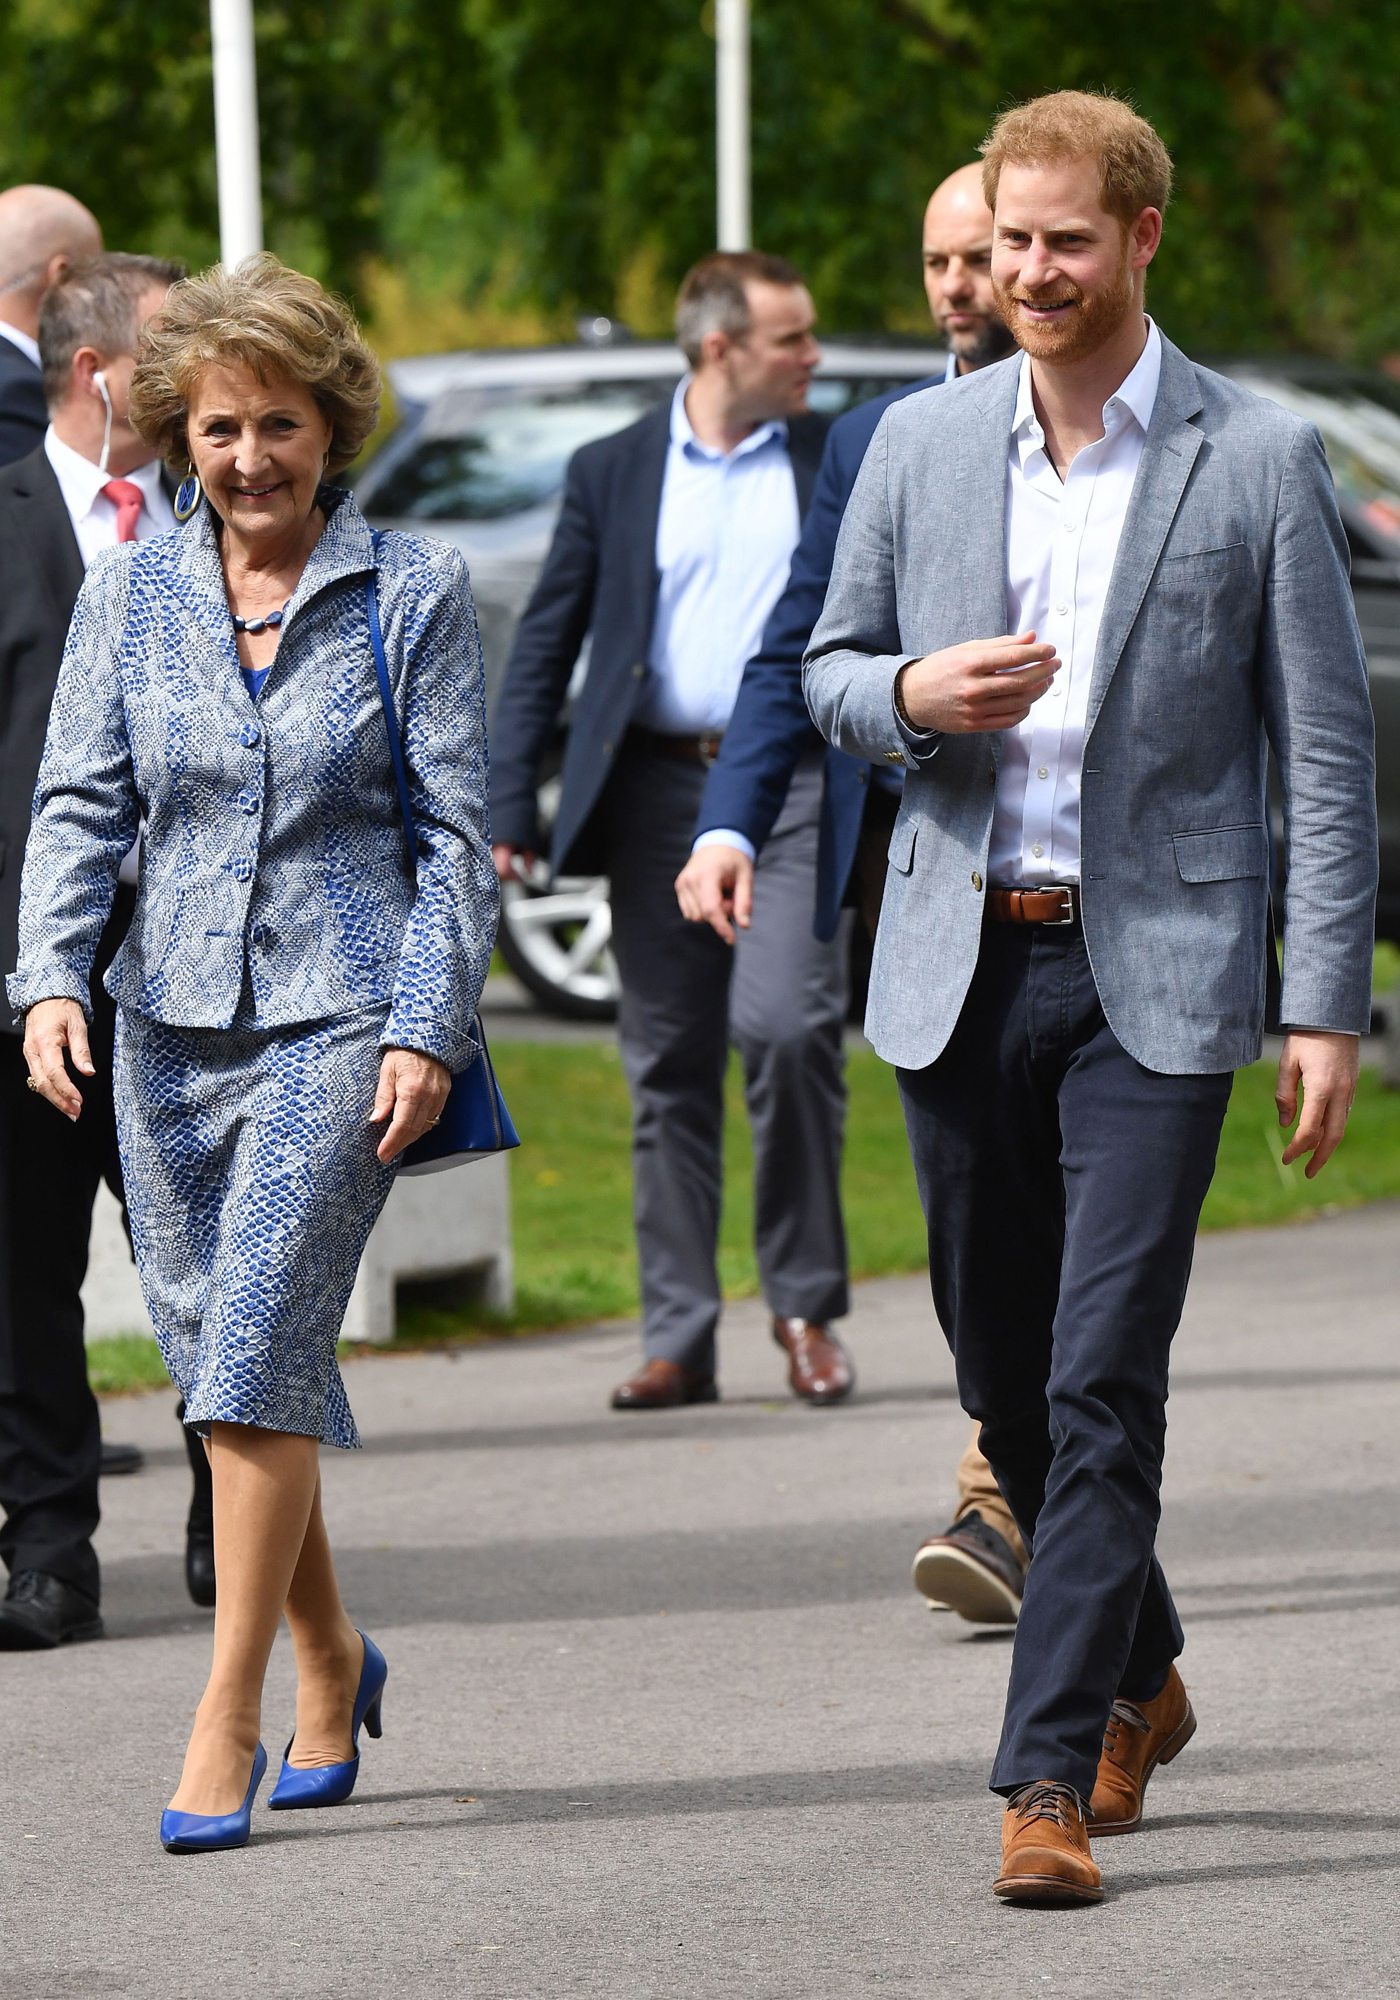 Prince Harry visit to the Netherlands